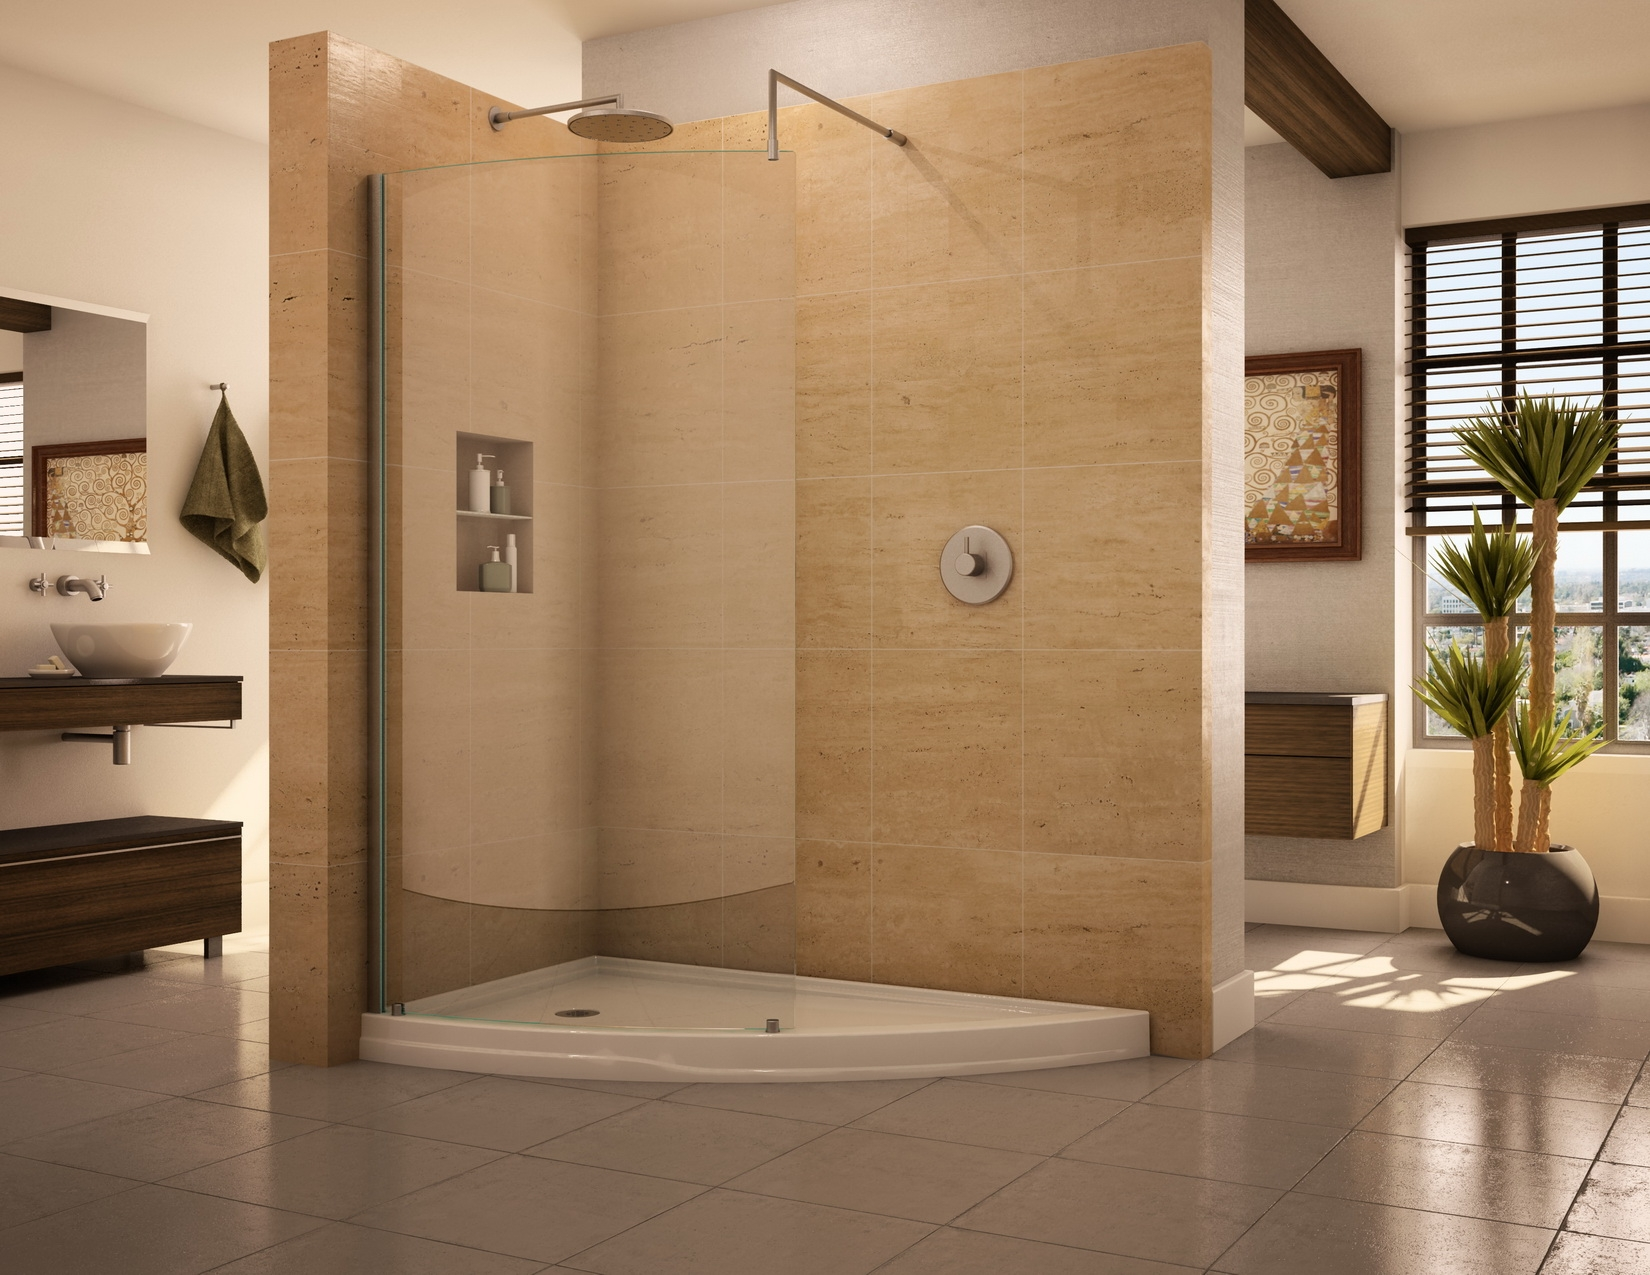 Shower Designs Pictures Doorless Shower Designs Teach You How To Go With The Flow